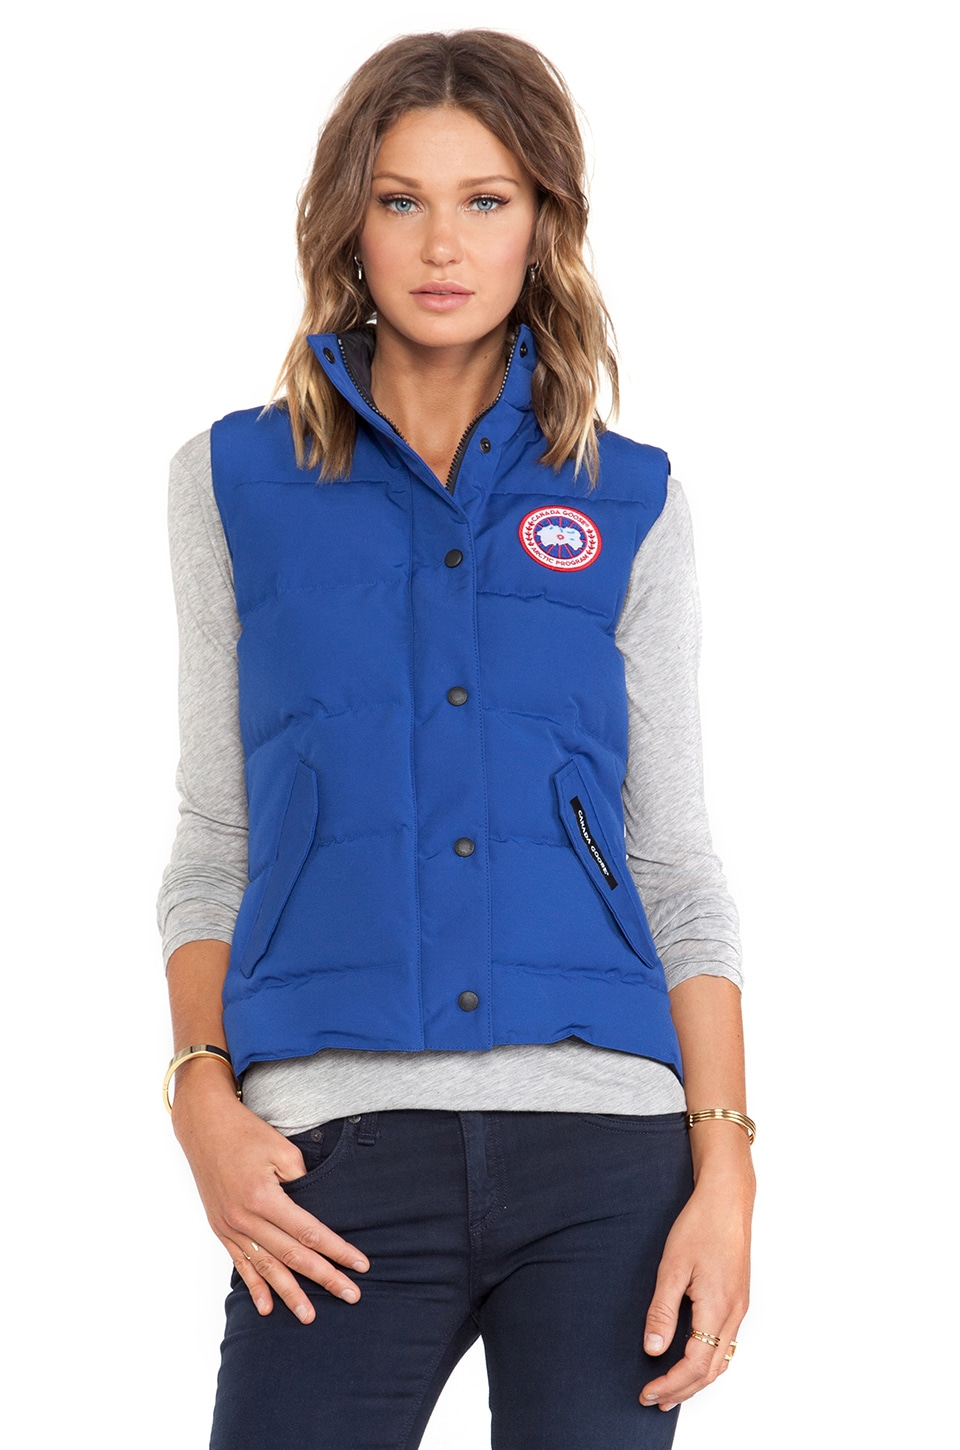 Canada Goose Freestyle Vest in Pacific Blue